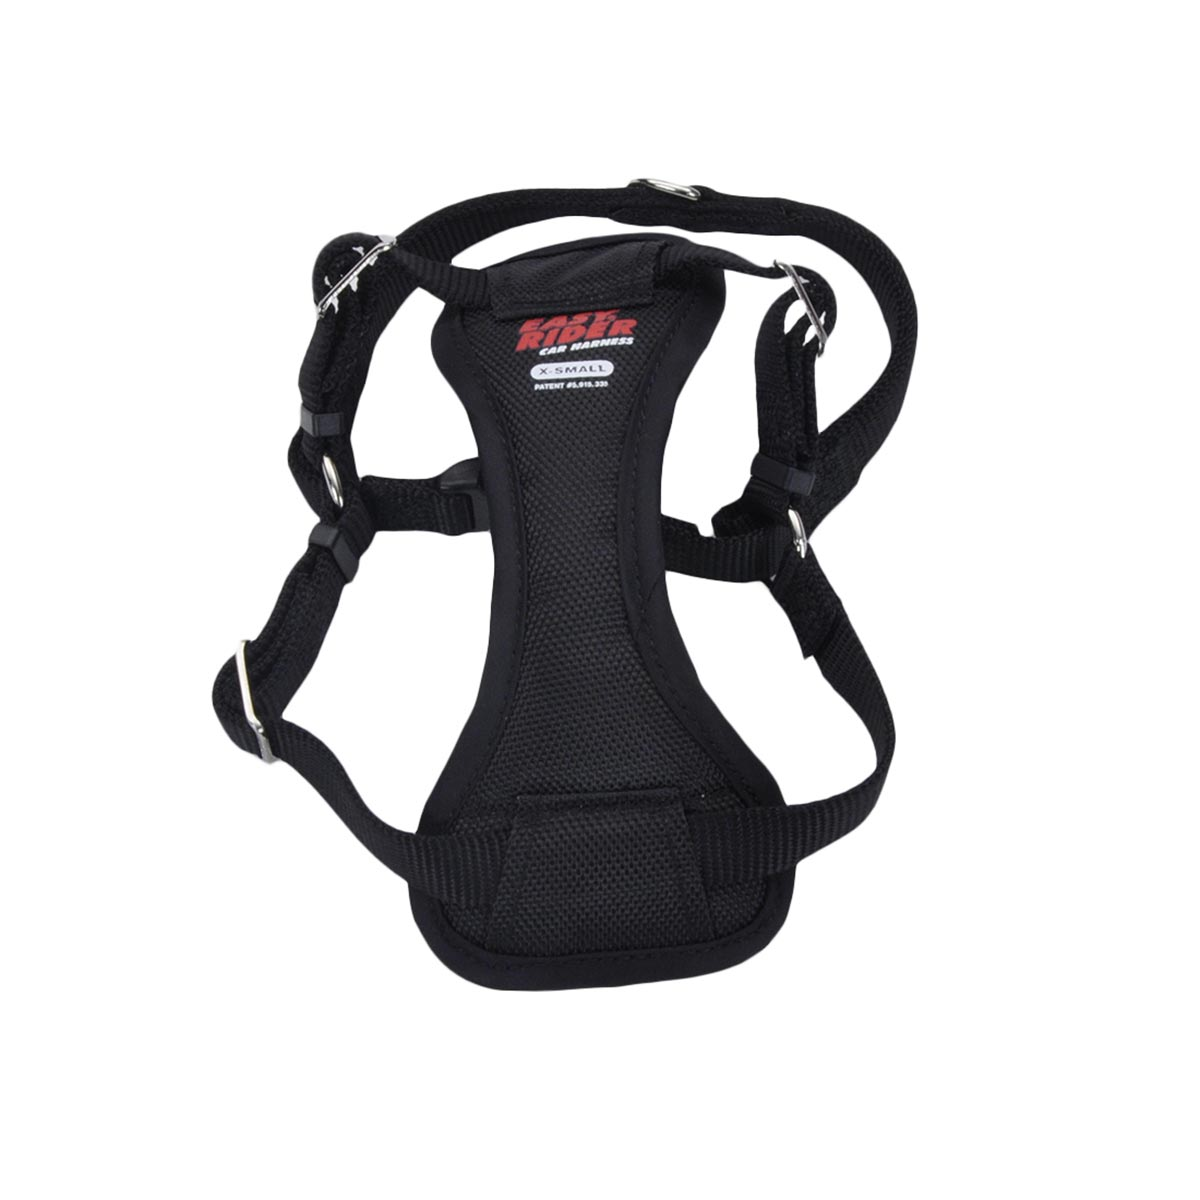 Coastal Easy Rider Dog Car Harness for Traveling with Small Dogs